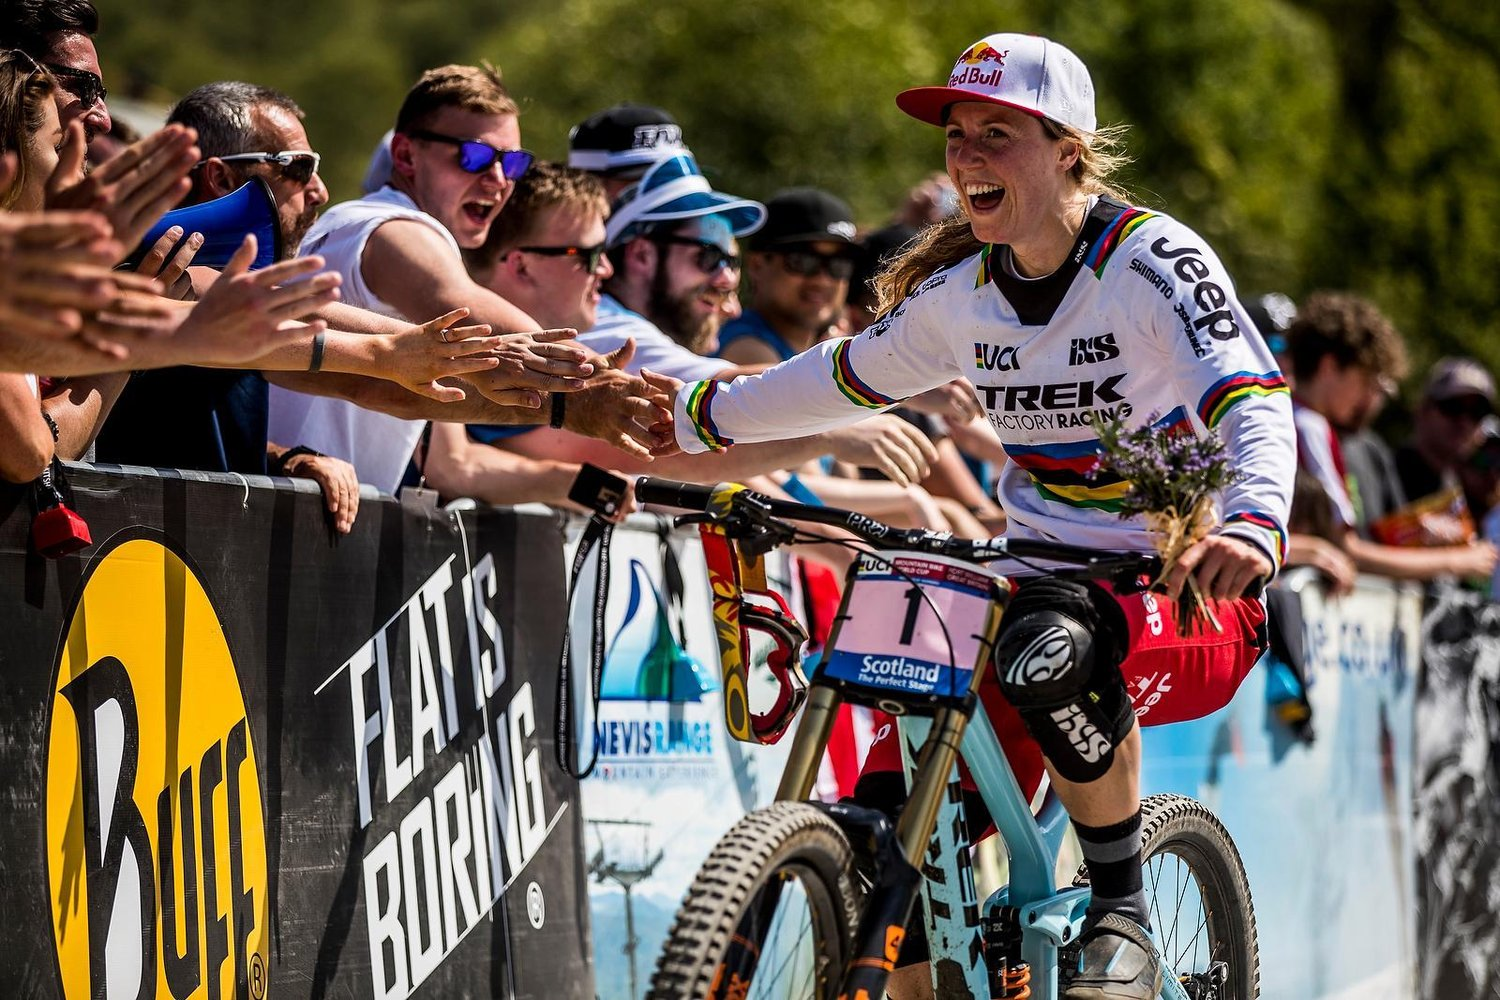 Fort William World Cup DH